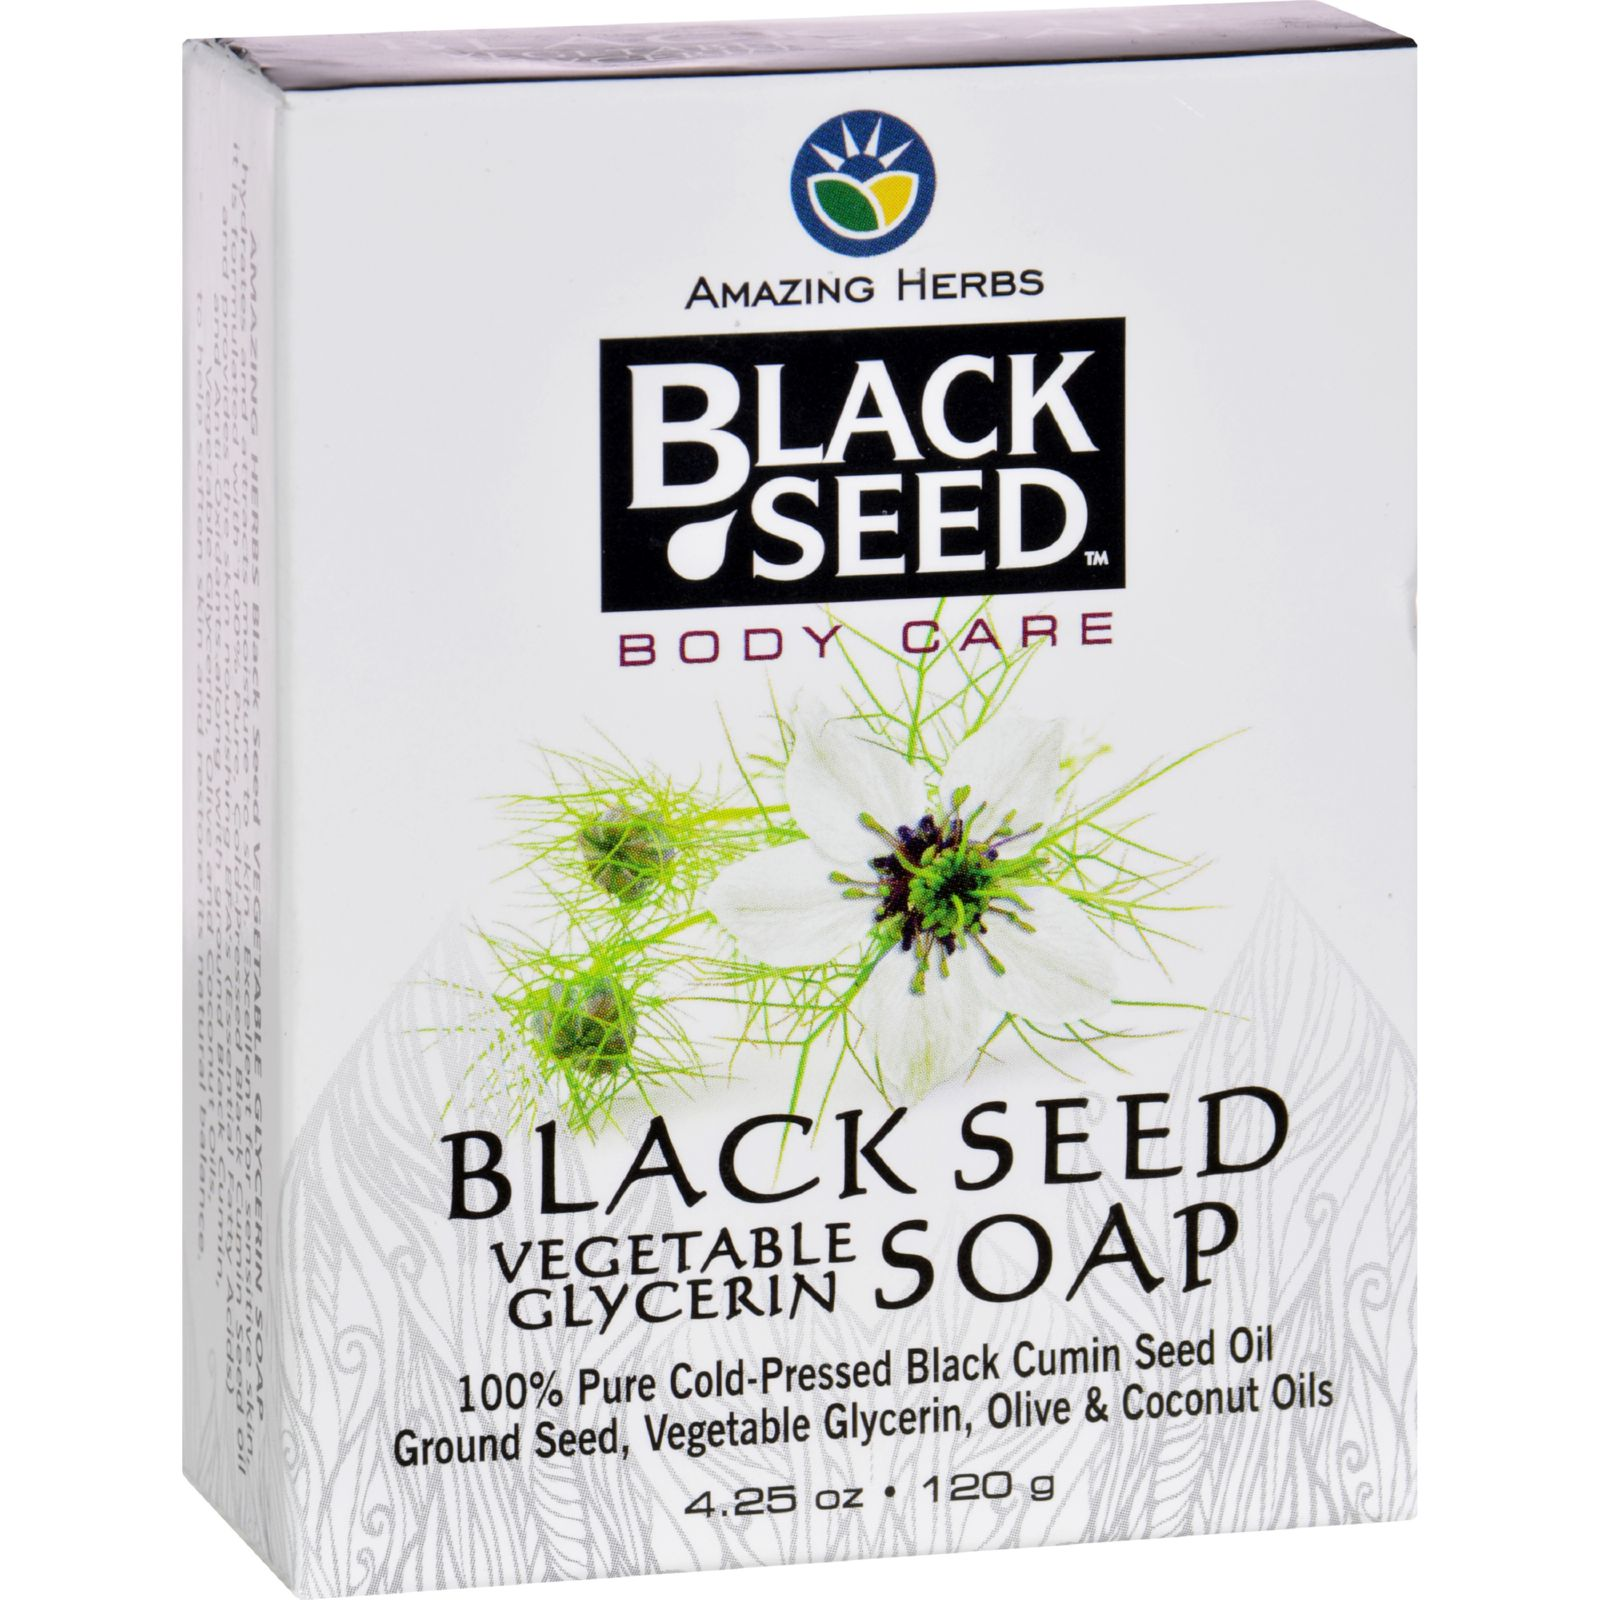 Black Seed Bar Soap  Vegetable Glycerin  4.25 oz